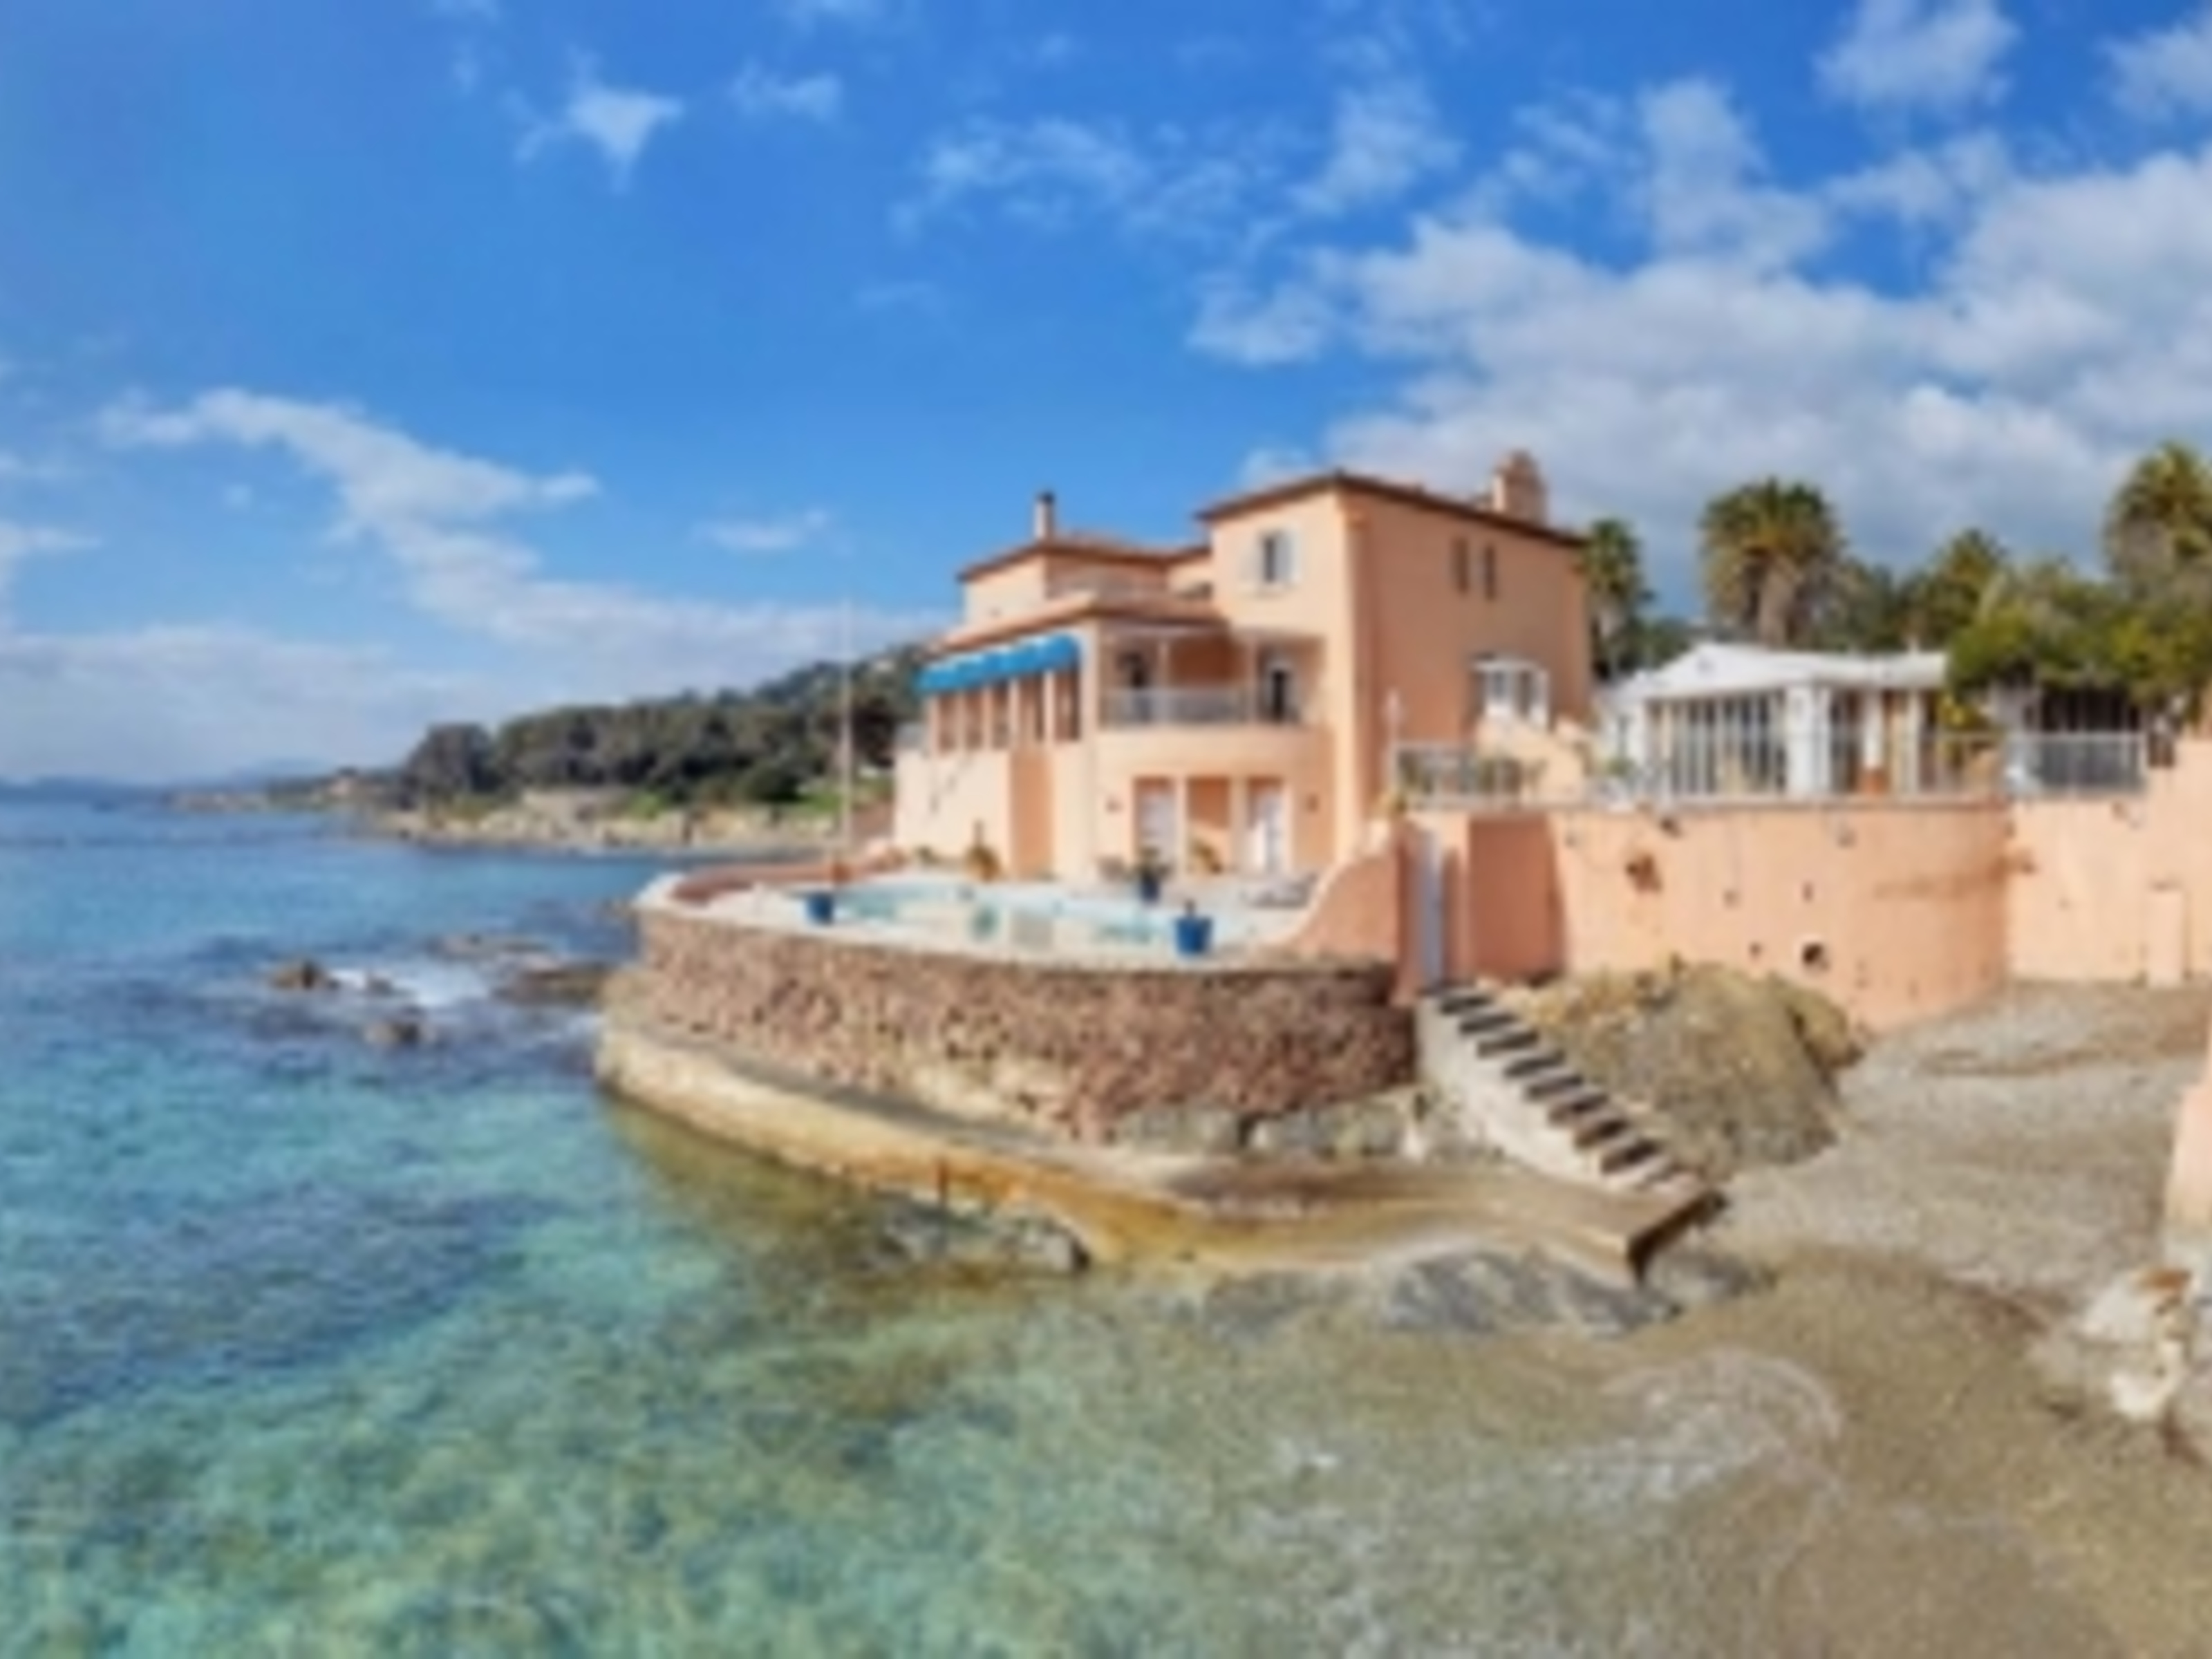 Single Family Home for Sale at Exceptional water front villa Other Provence-Alpes-Cote D'Azur, Provence-Alpes-Cote D'Azur 83380 France